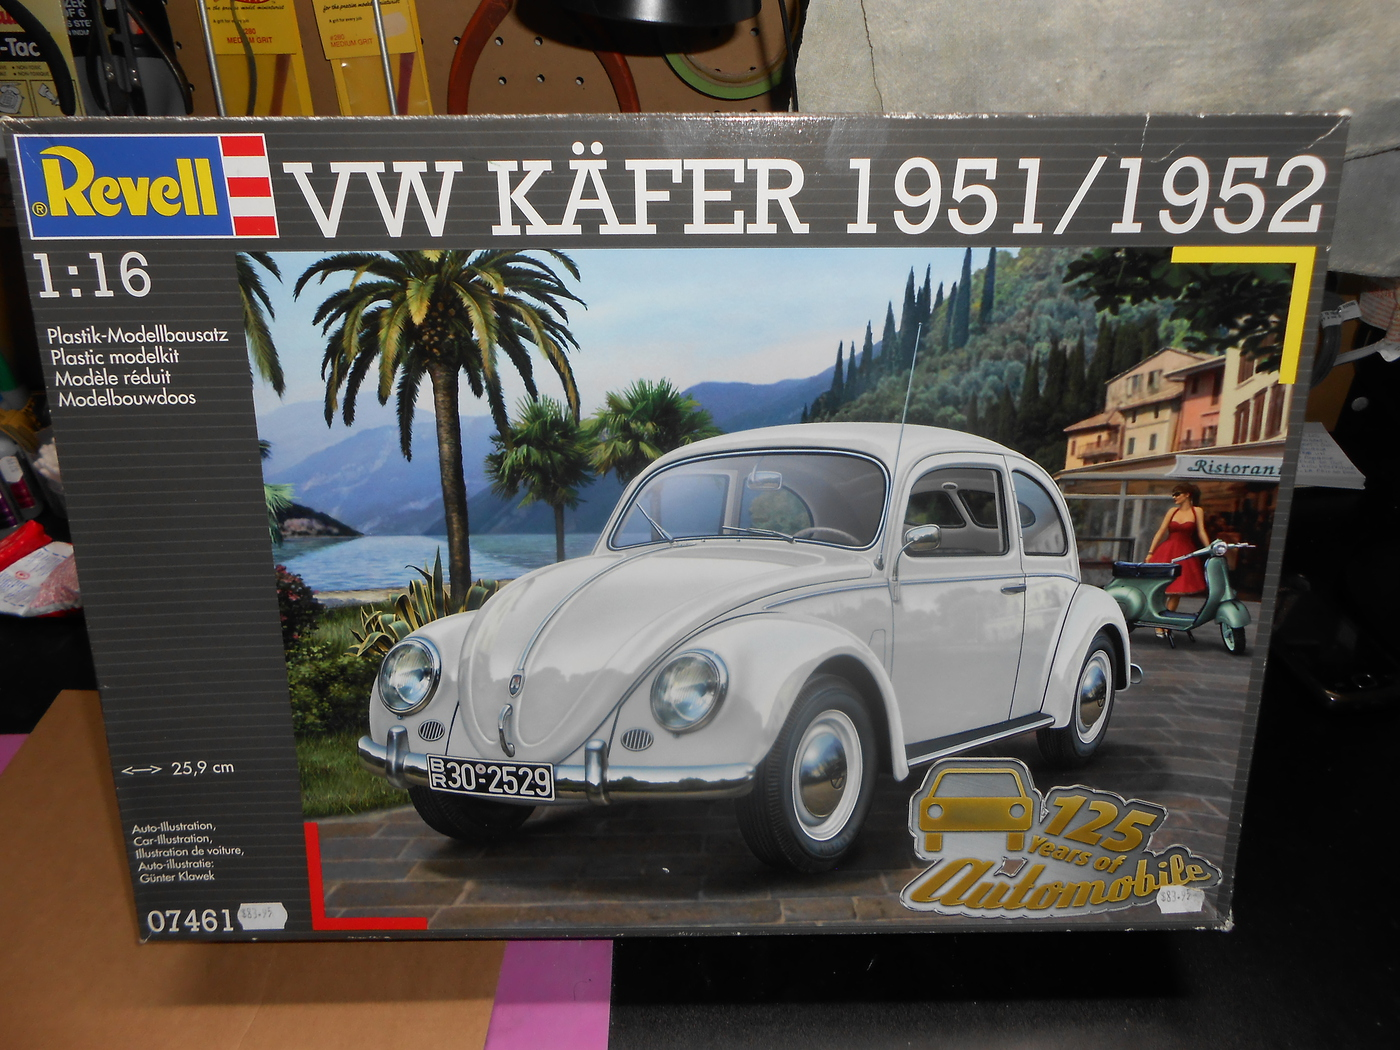 1951-52 VW KÄFER REV.GER. 1/16 DSCN0305-vi